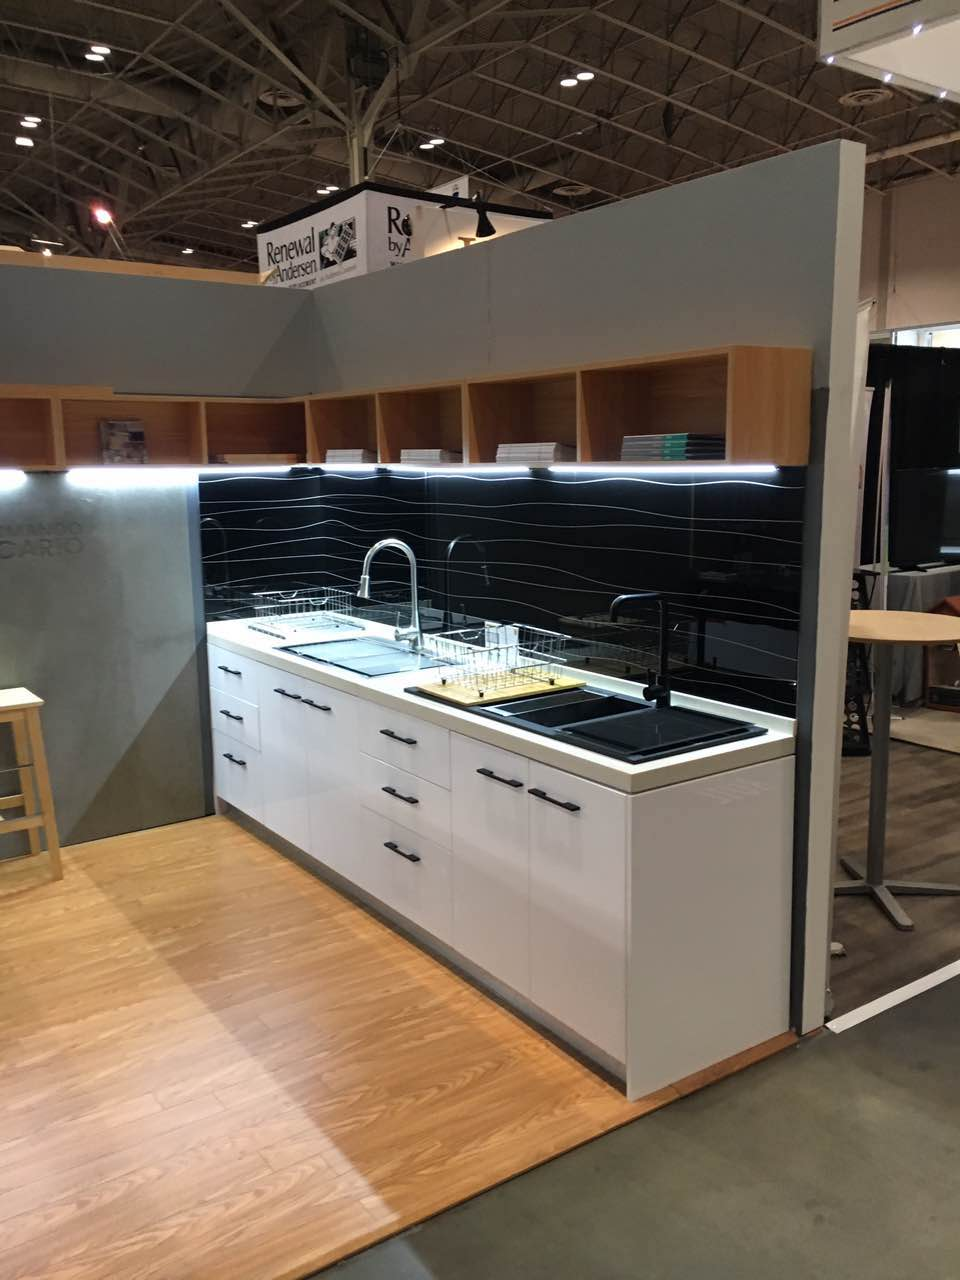 ... Showcasing Sinkware, Faucets, Backslashes, Benching And Kitchen  Accessories. Whether You Are Renovating Your Current House Or Building Your  Dream Home, ...